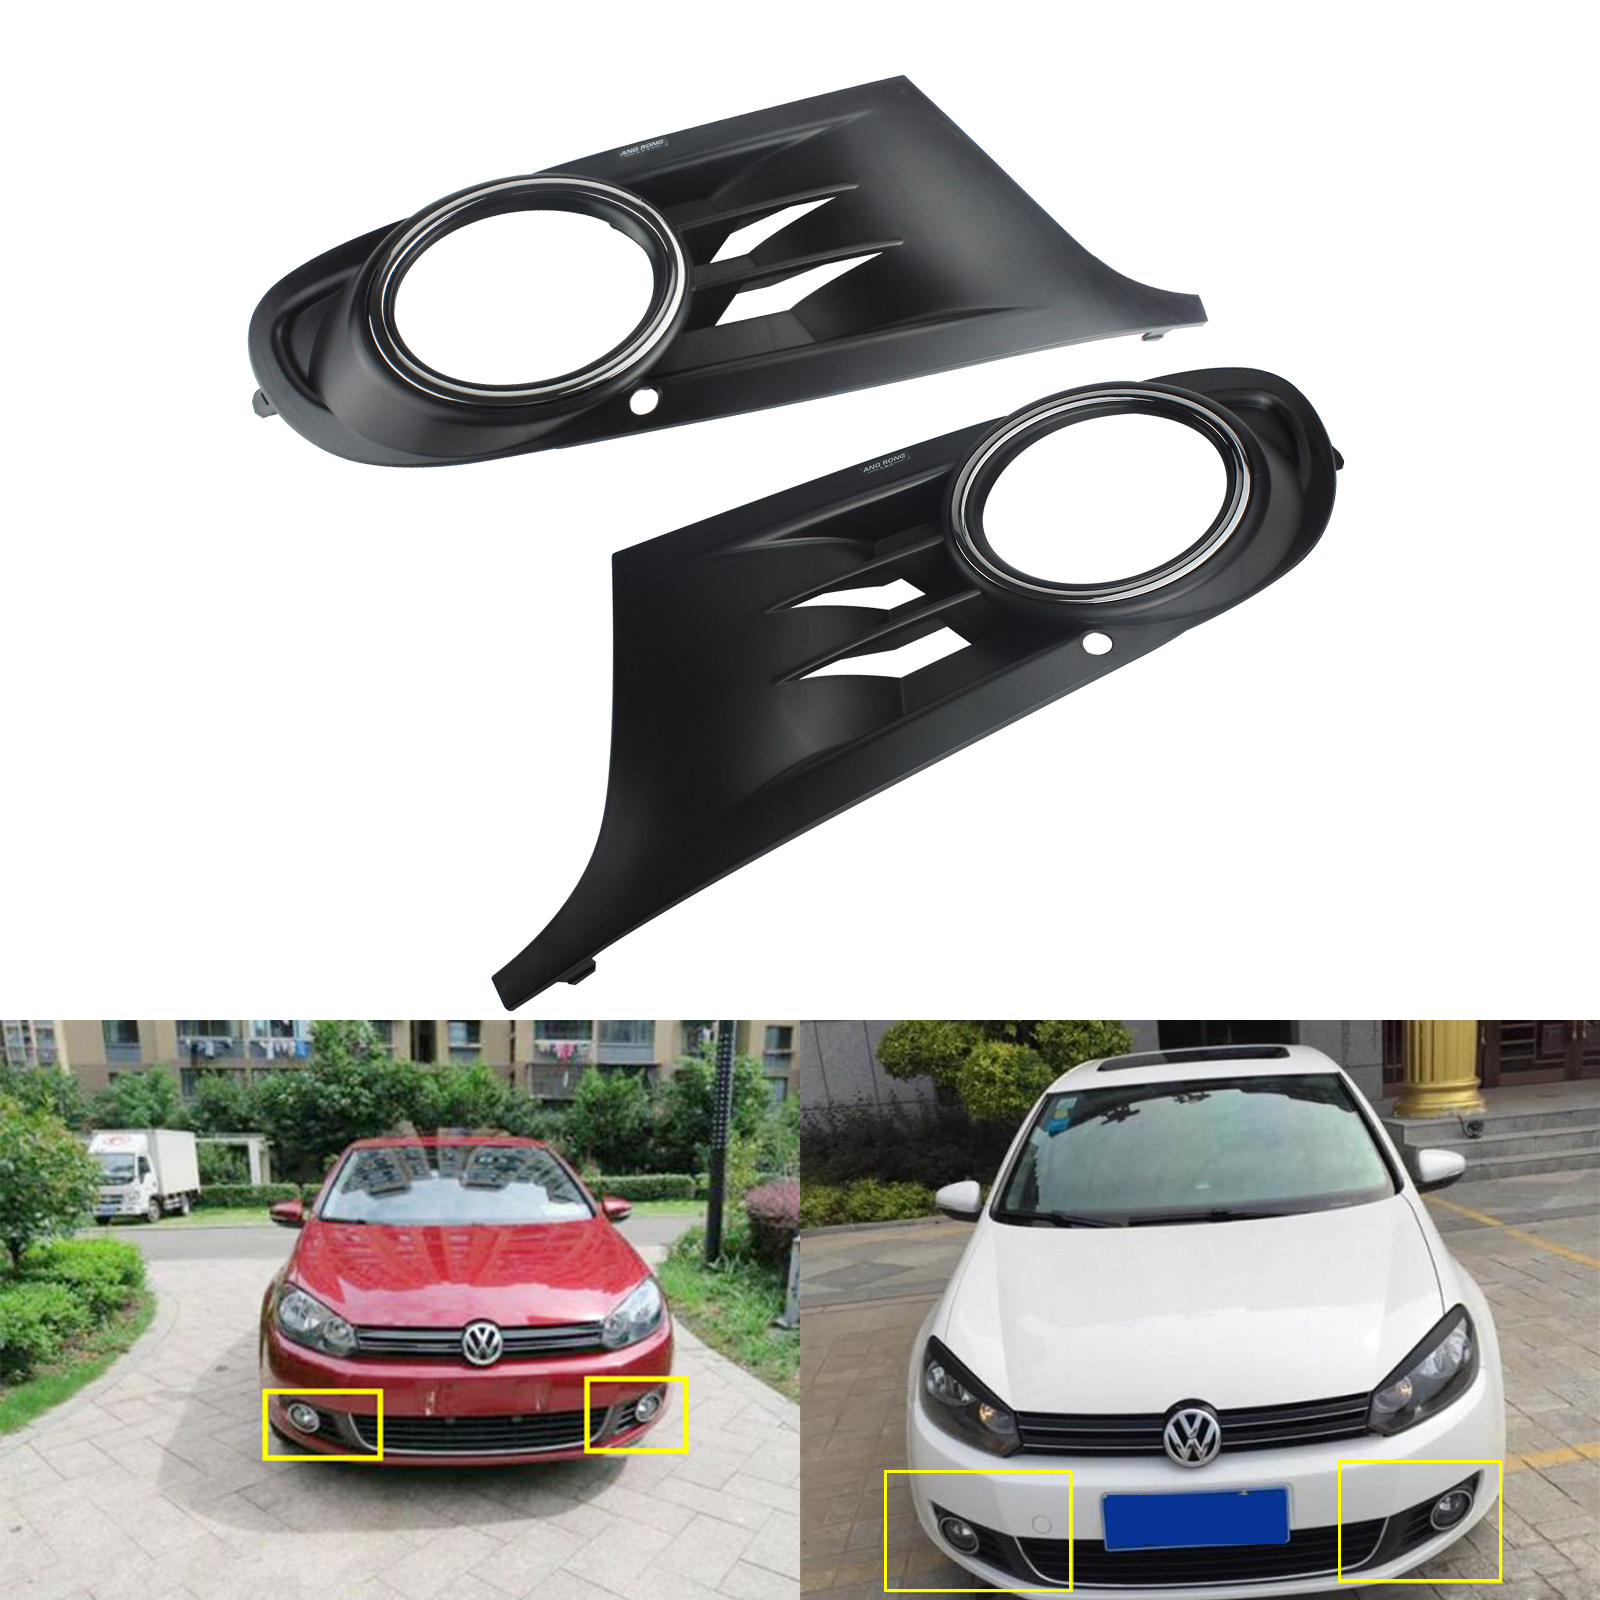 ANGRONG 2x Front Bumper Fog <font><b>Light</b></font> Cover Surround Grill Left & Right For <font><b>VW</b></font> <font><b>GOLF</b></font> <font><b>6</b></font> MK6 2008-2013 image